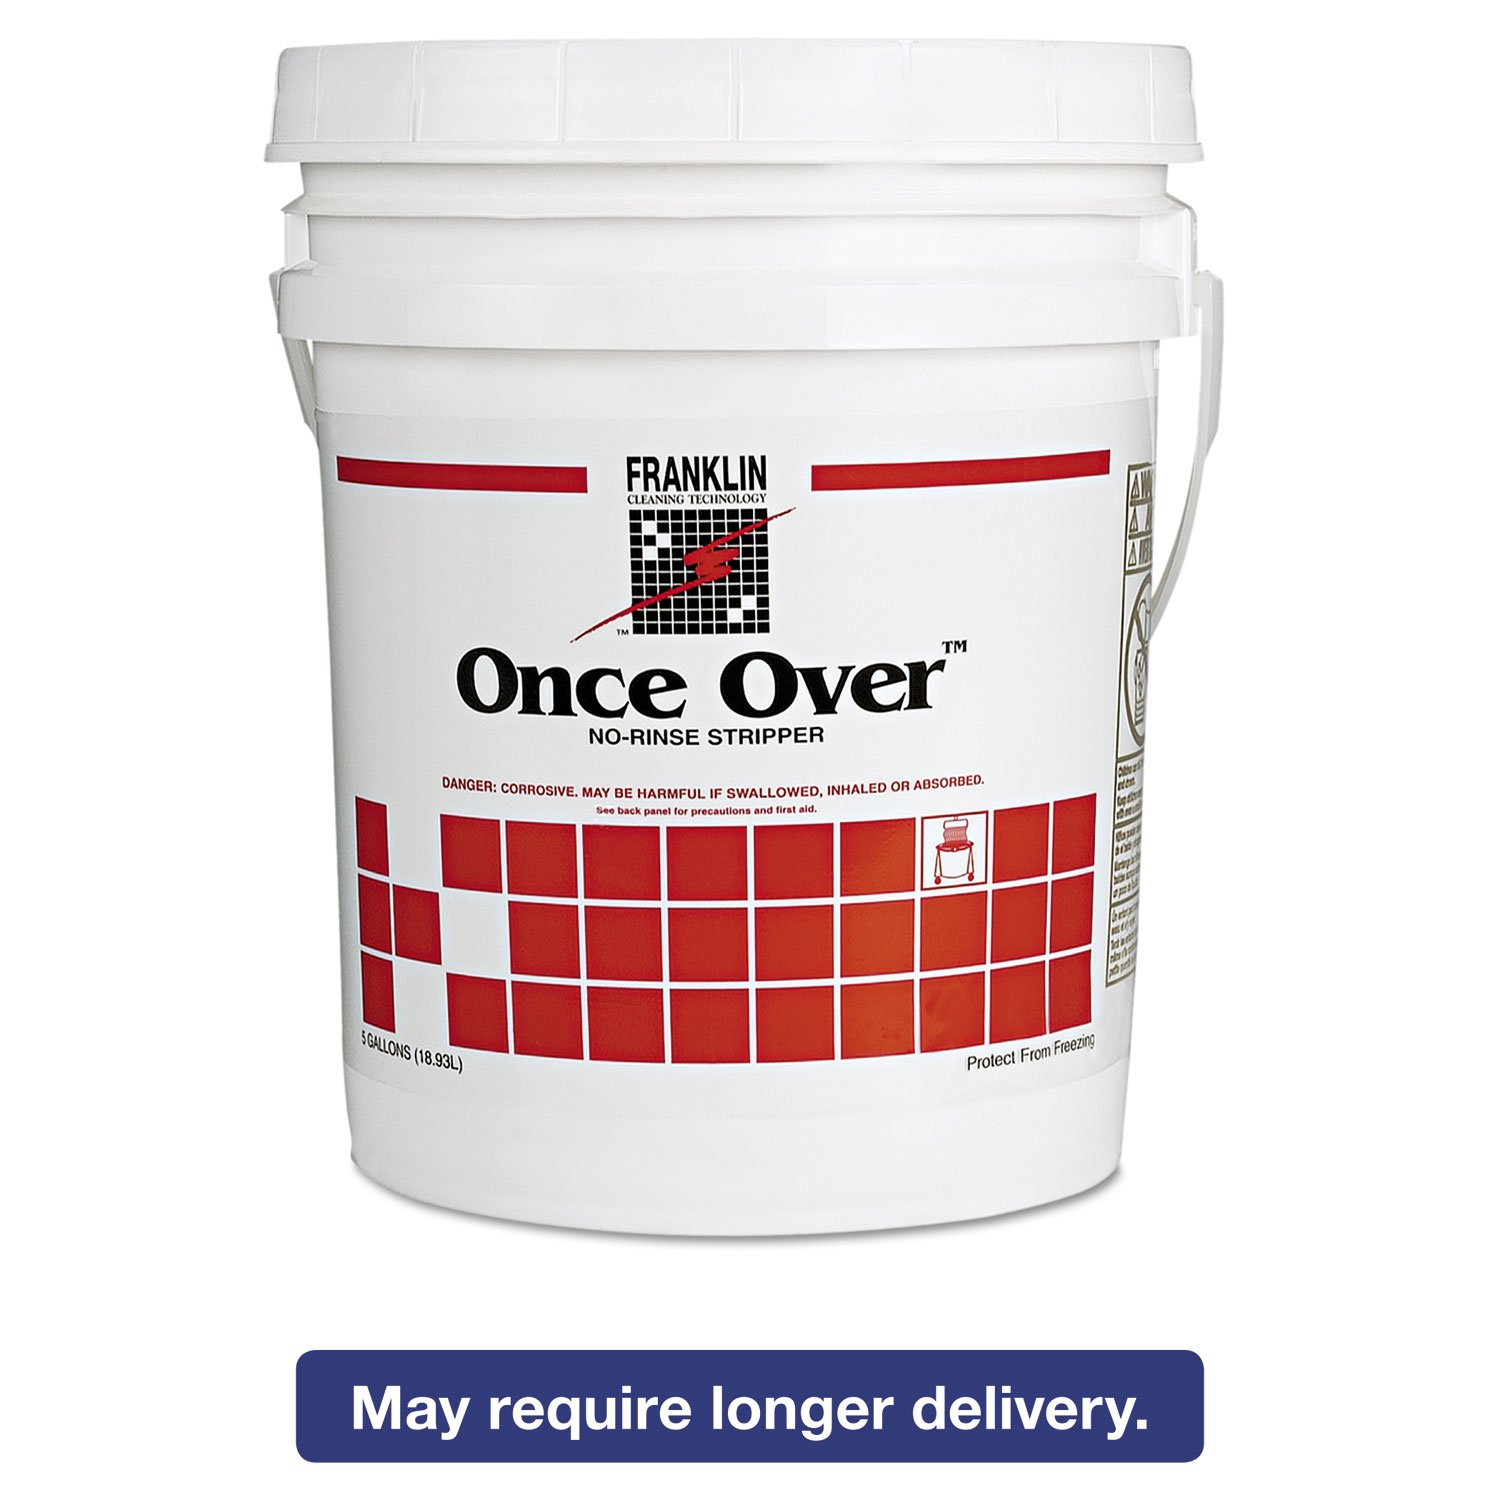 Franklin Cleaning F200026 Once Over Floor Stripper Mint Scent Liquid 5 gal. Pail